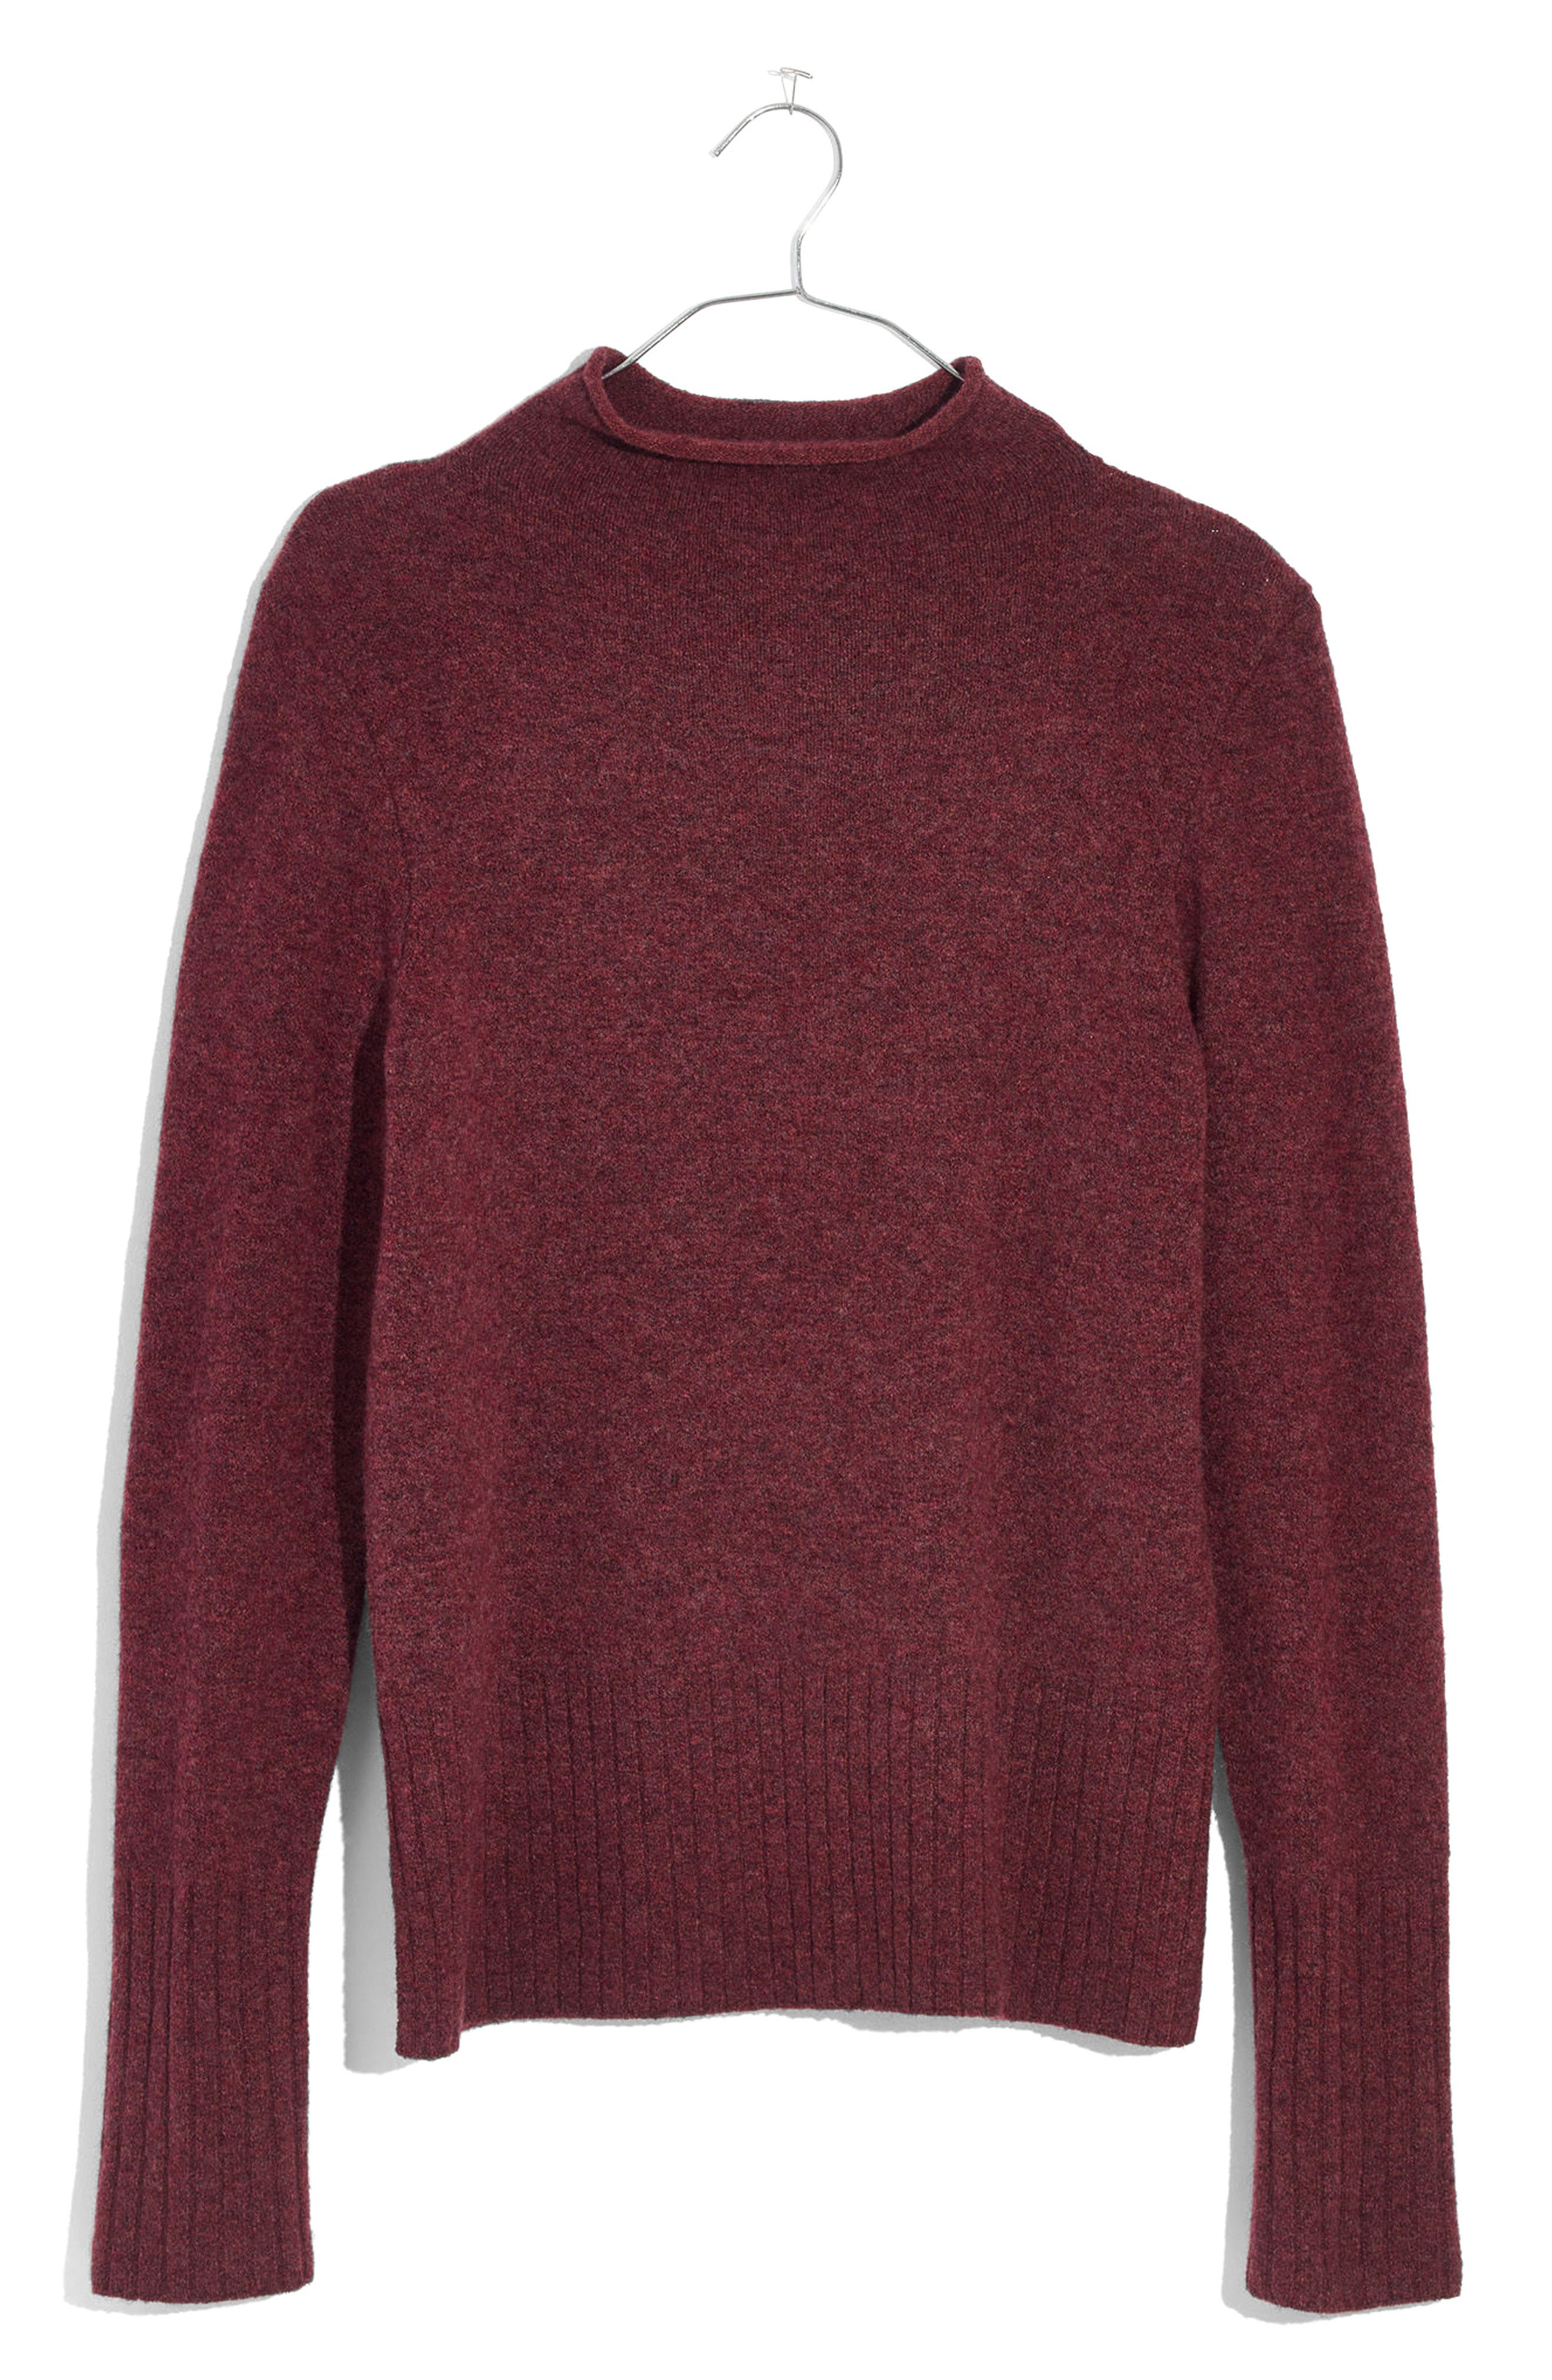 Madewell Womens Sweaters Clothing Accessories Nordstrom Torch Tunik Women Burgundy Maroon L